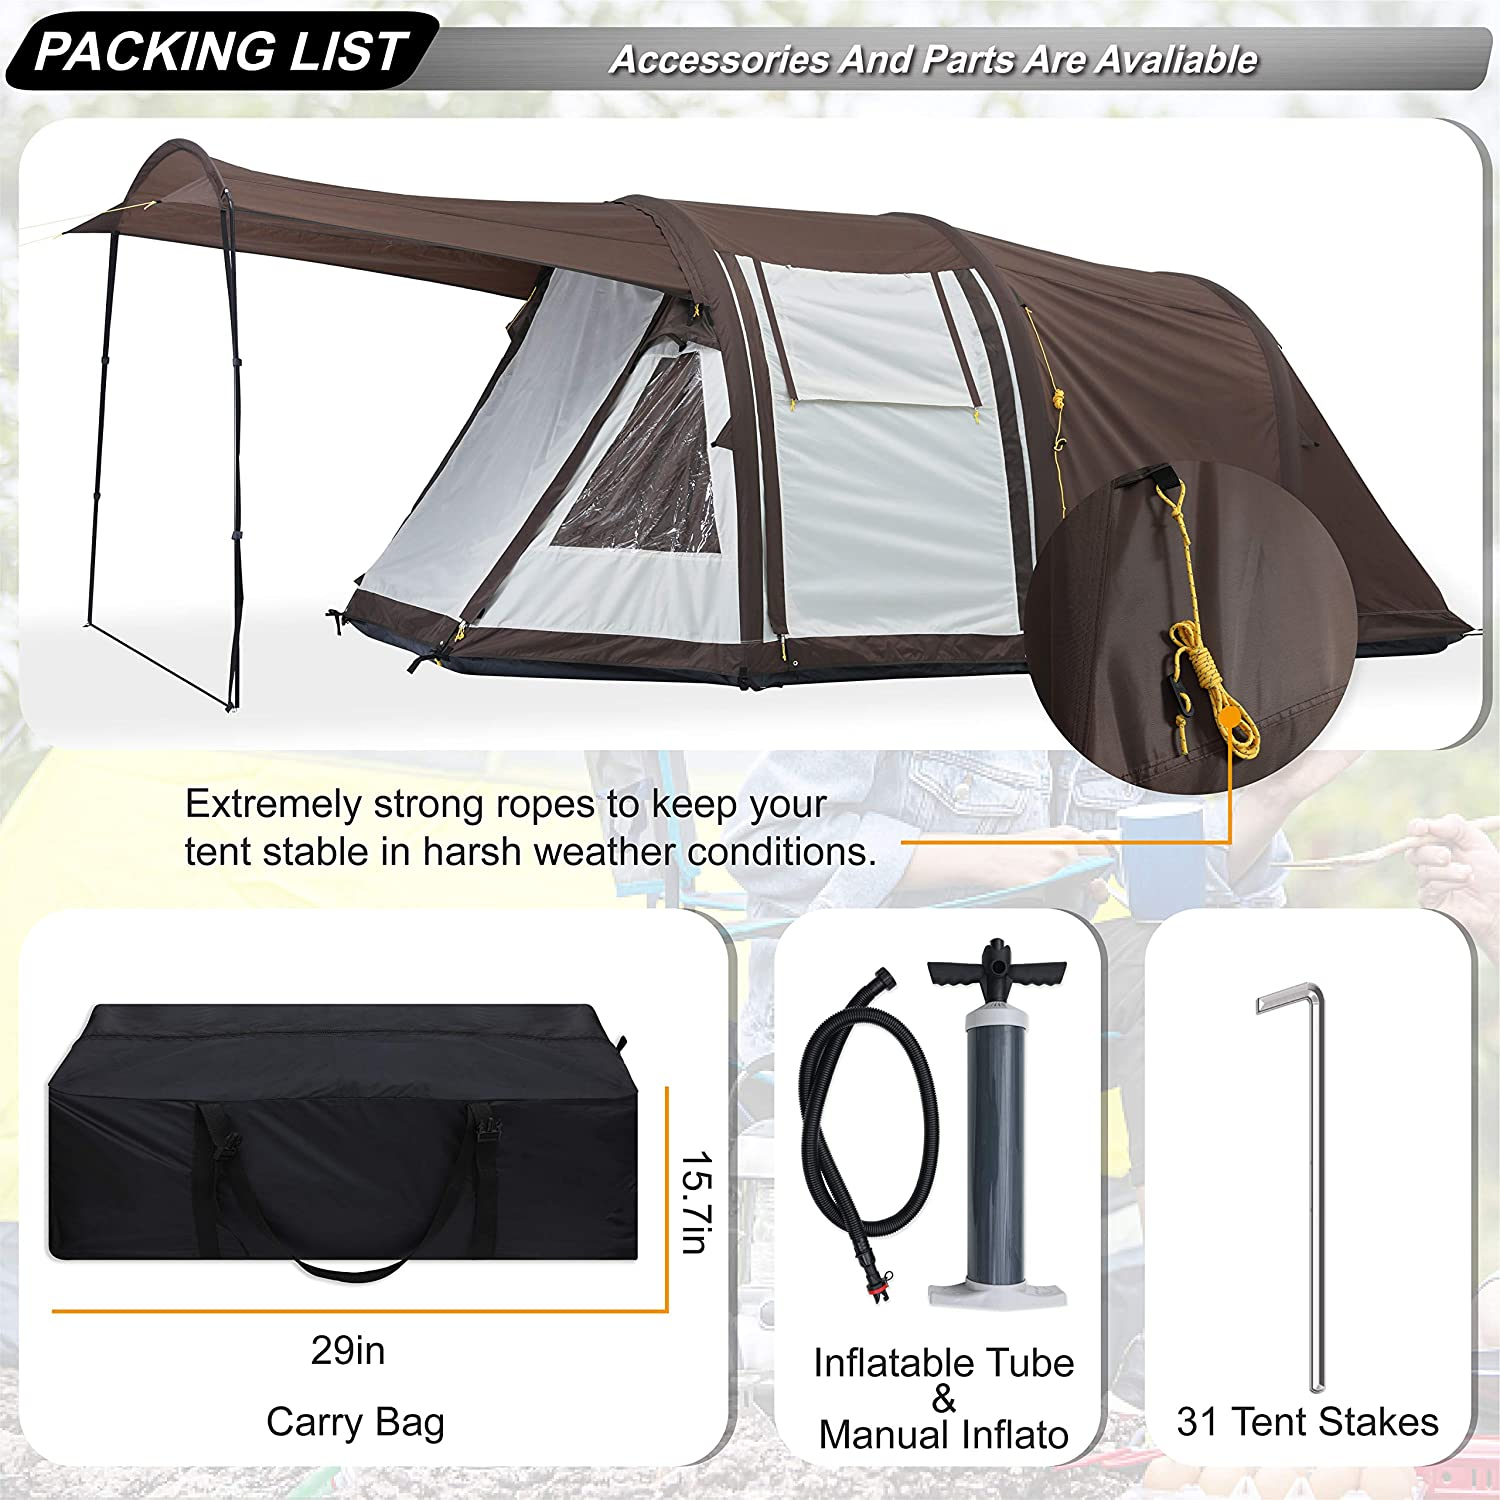 ABCCANOPY 4 Person Inflatable Dome Tent Set Up in Seconds Waterproof Outdoor Camping Tent with Top Rainfly Instant Cabin Tent